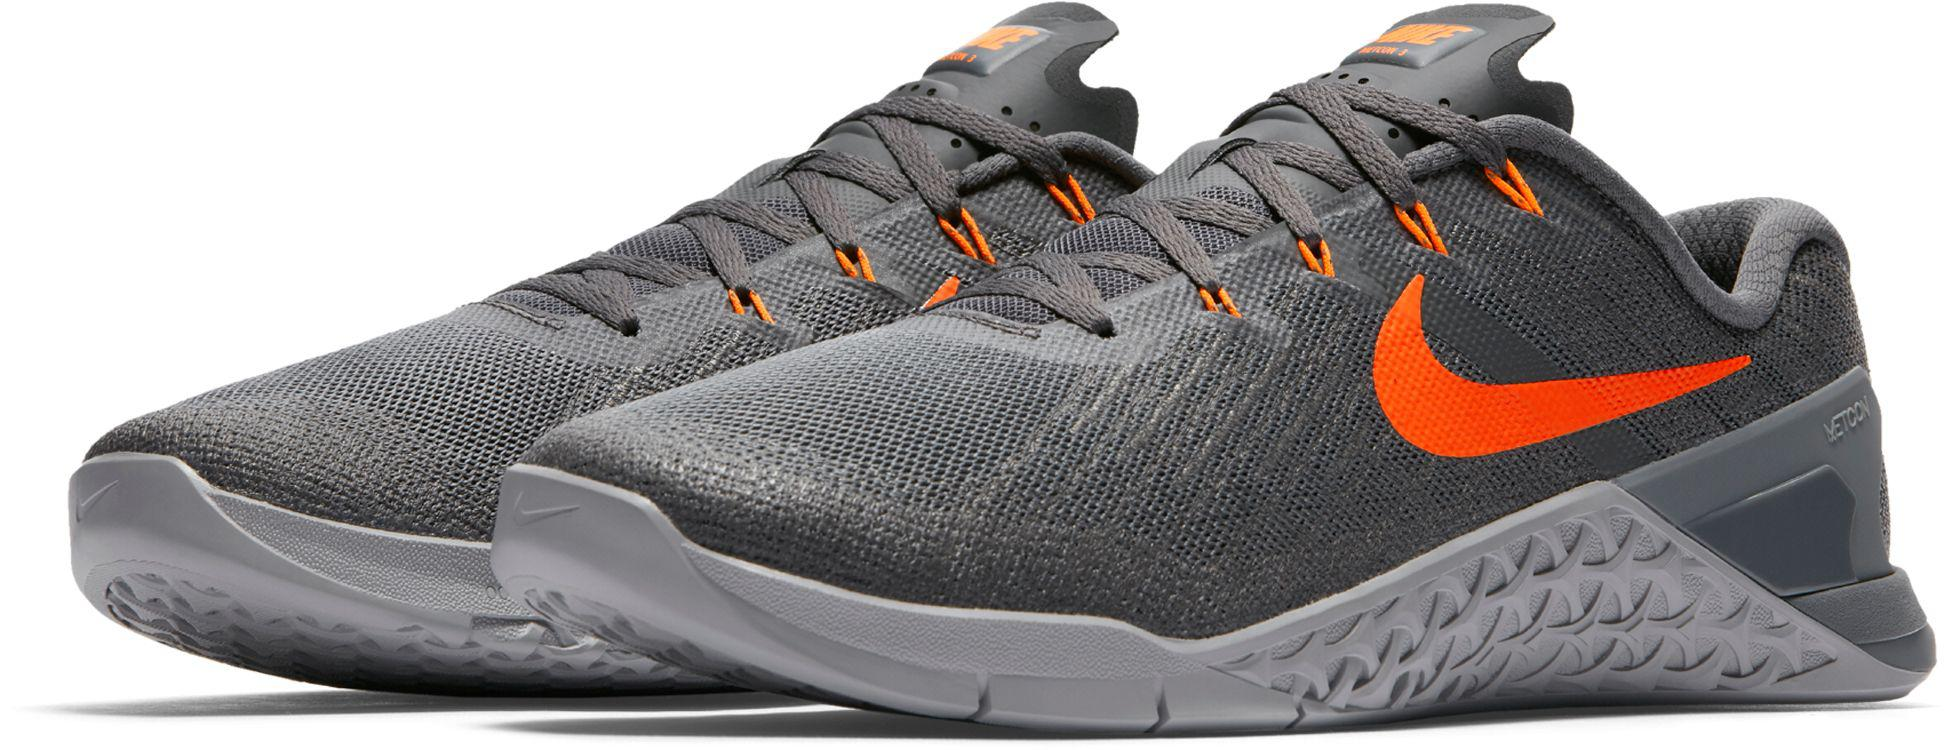 9be263c5cd23 Lyst - Nike Metcon 3 Training Shoes in Gray for Men